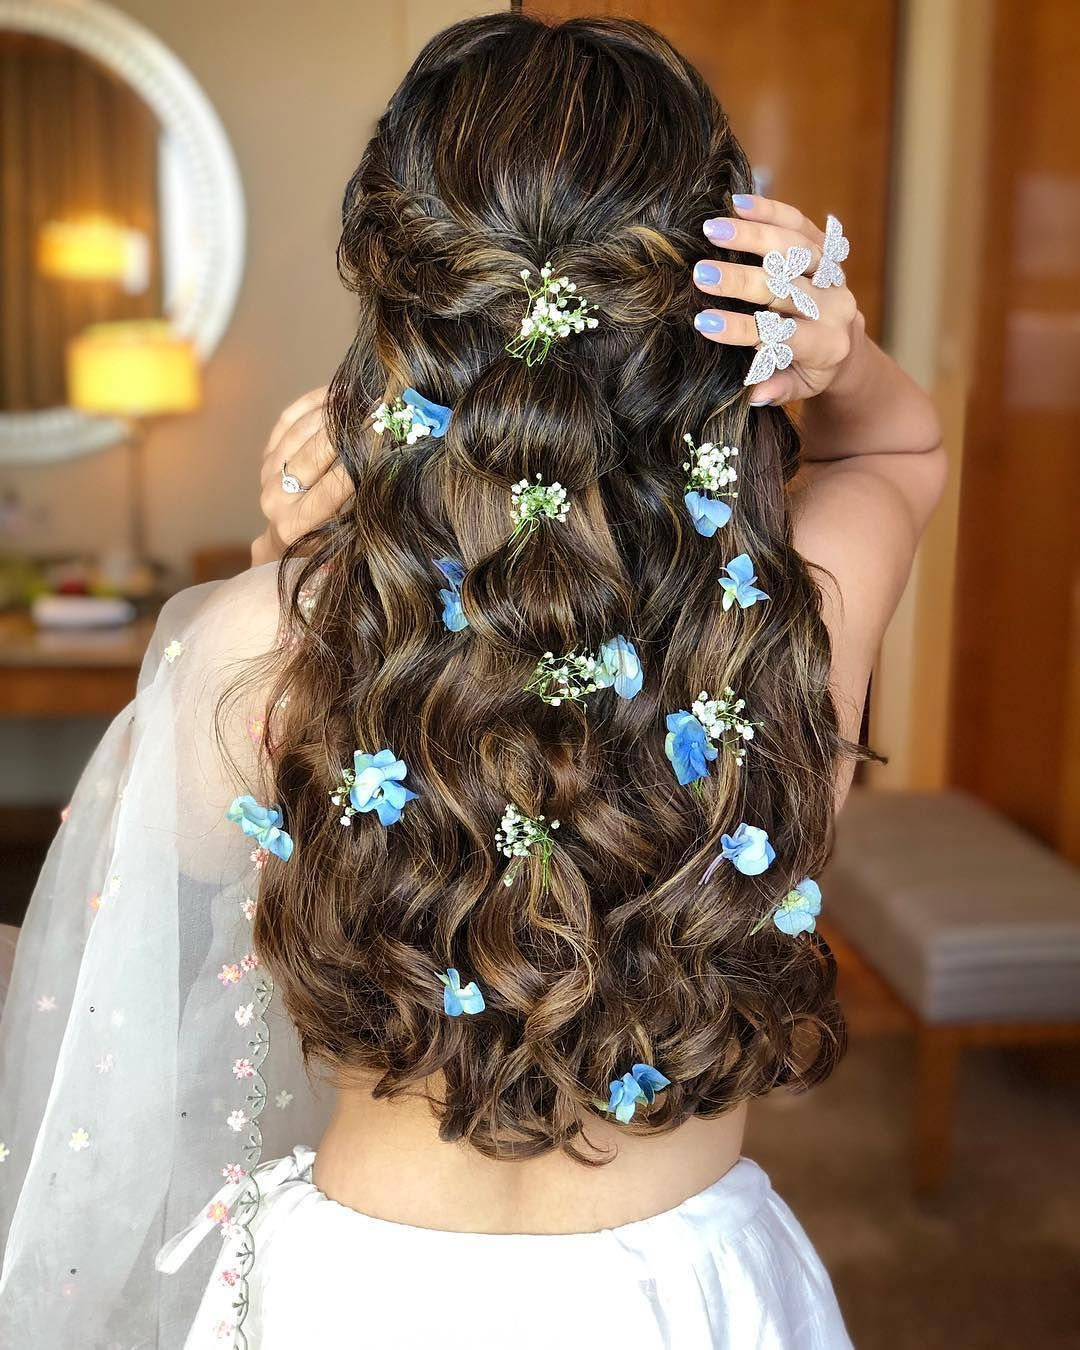 Flirtly Floral Braided Curl Hairstyle Open Hairstyles Indian Wedding Hairstyles Bridal Hairdo